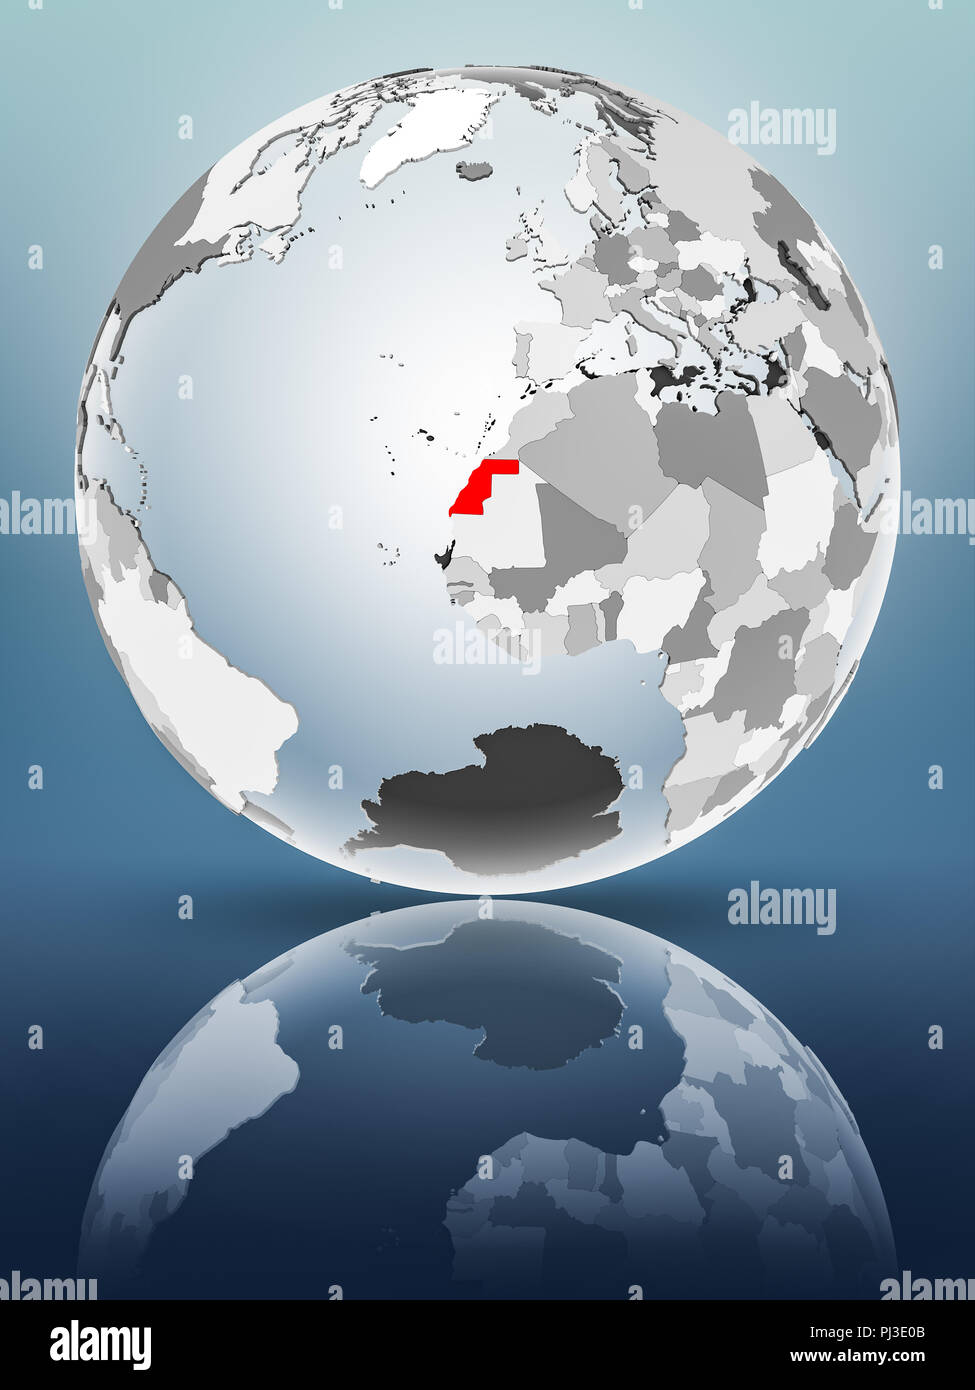 Western Sahara on globe with translucent oceans on shiny surface. 3D illustration. - Stock Image